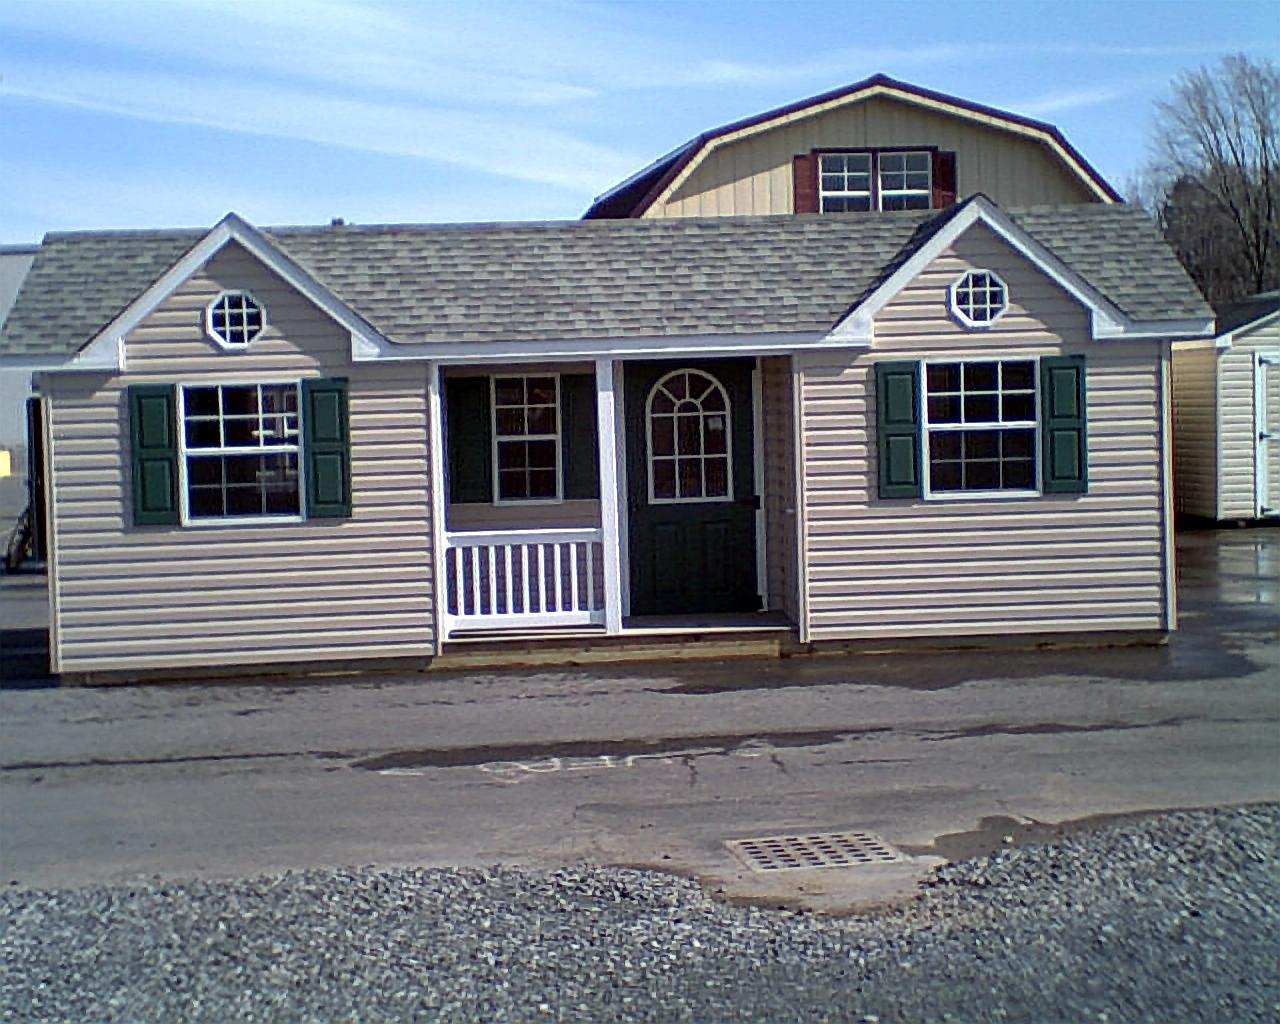 Twin Peaks Vinyl 12 x 24 with 6 foot porch front view